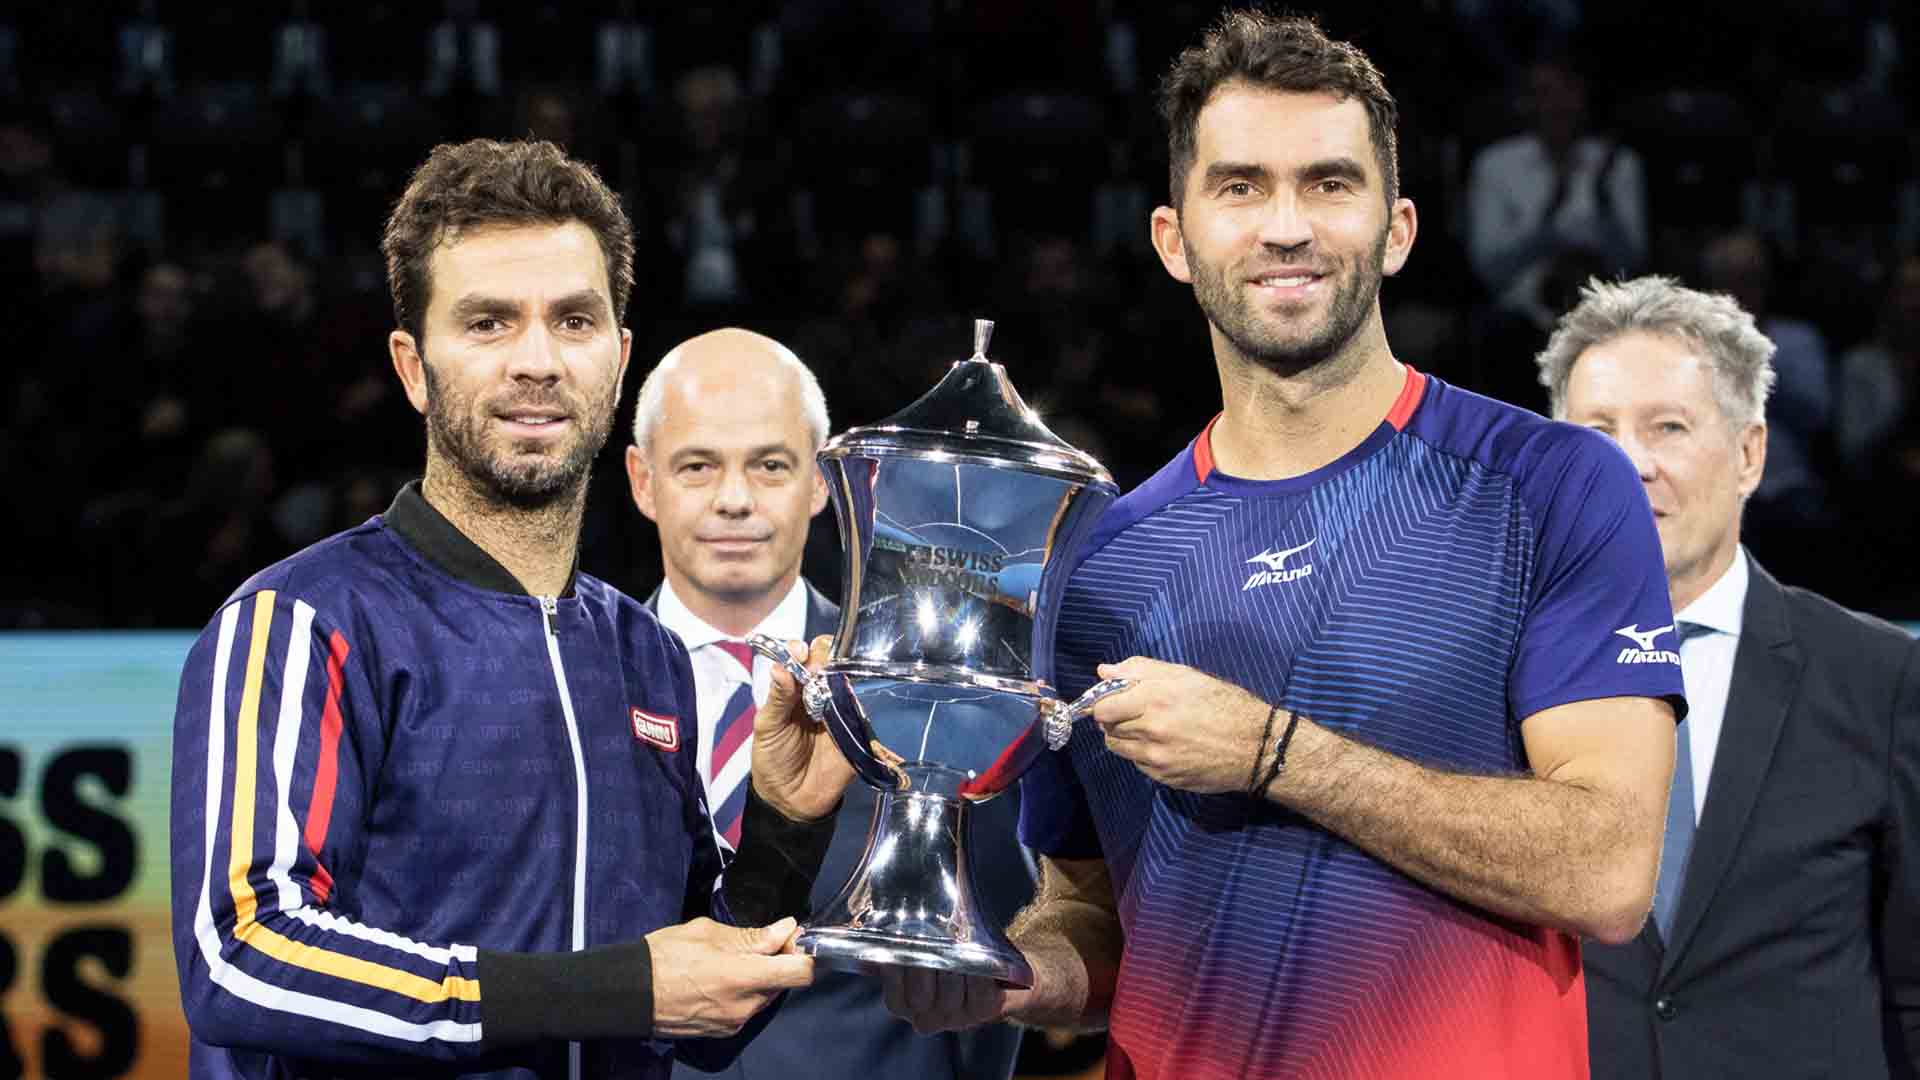 Jean-Julien Rojer and Horia Tecau own a 212-117 tour-level team record.